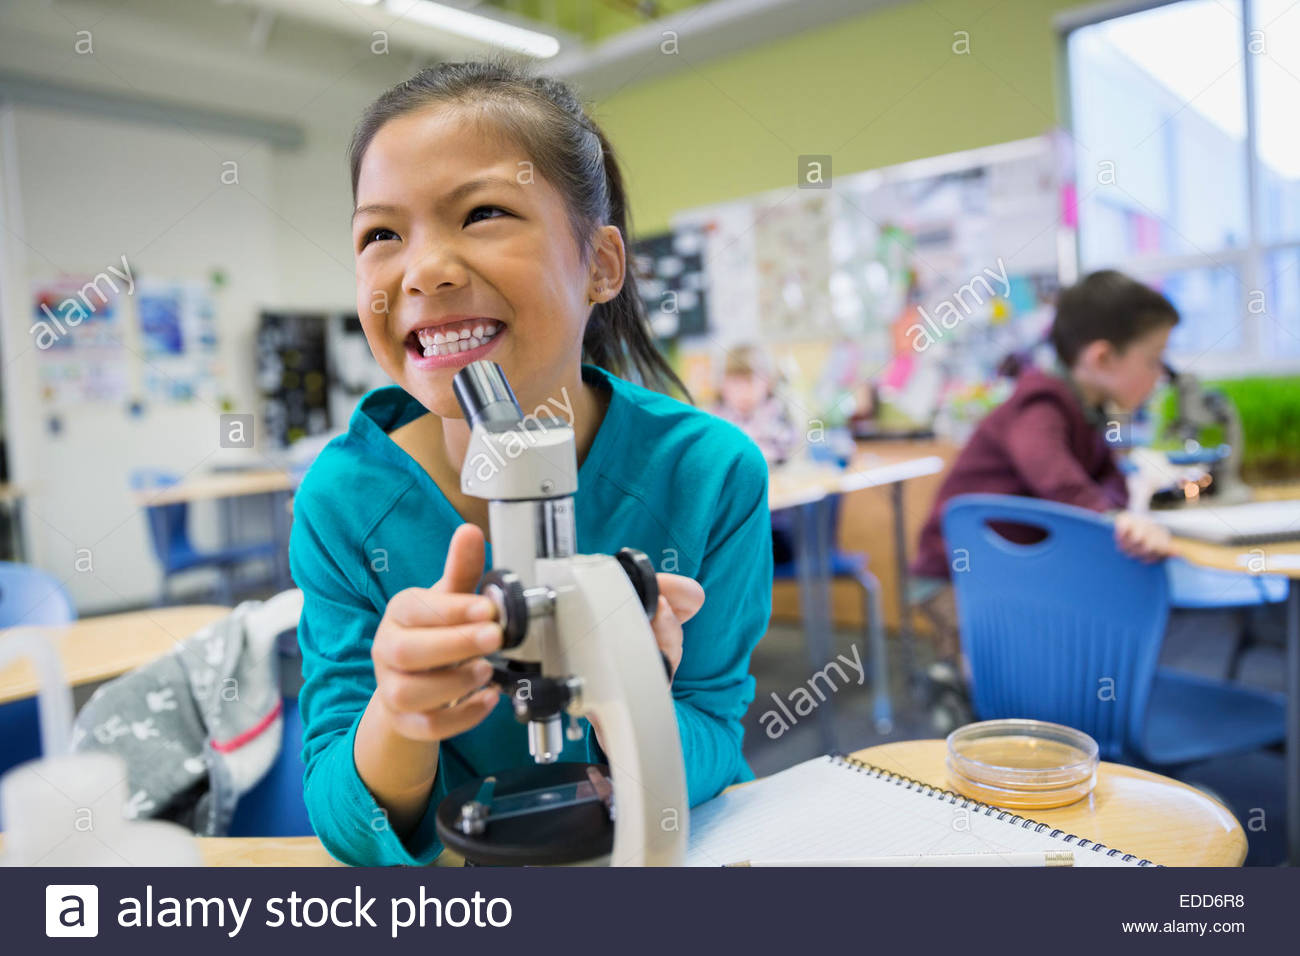 Enthusiastic elementary student using microscope in laboratory - Stock Image